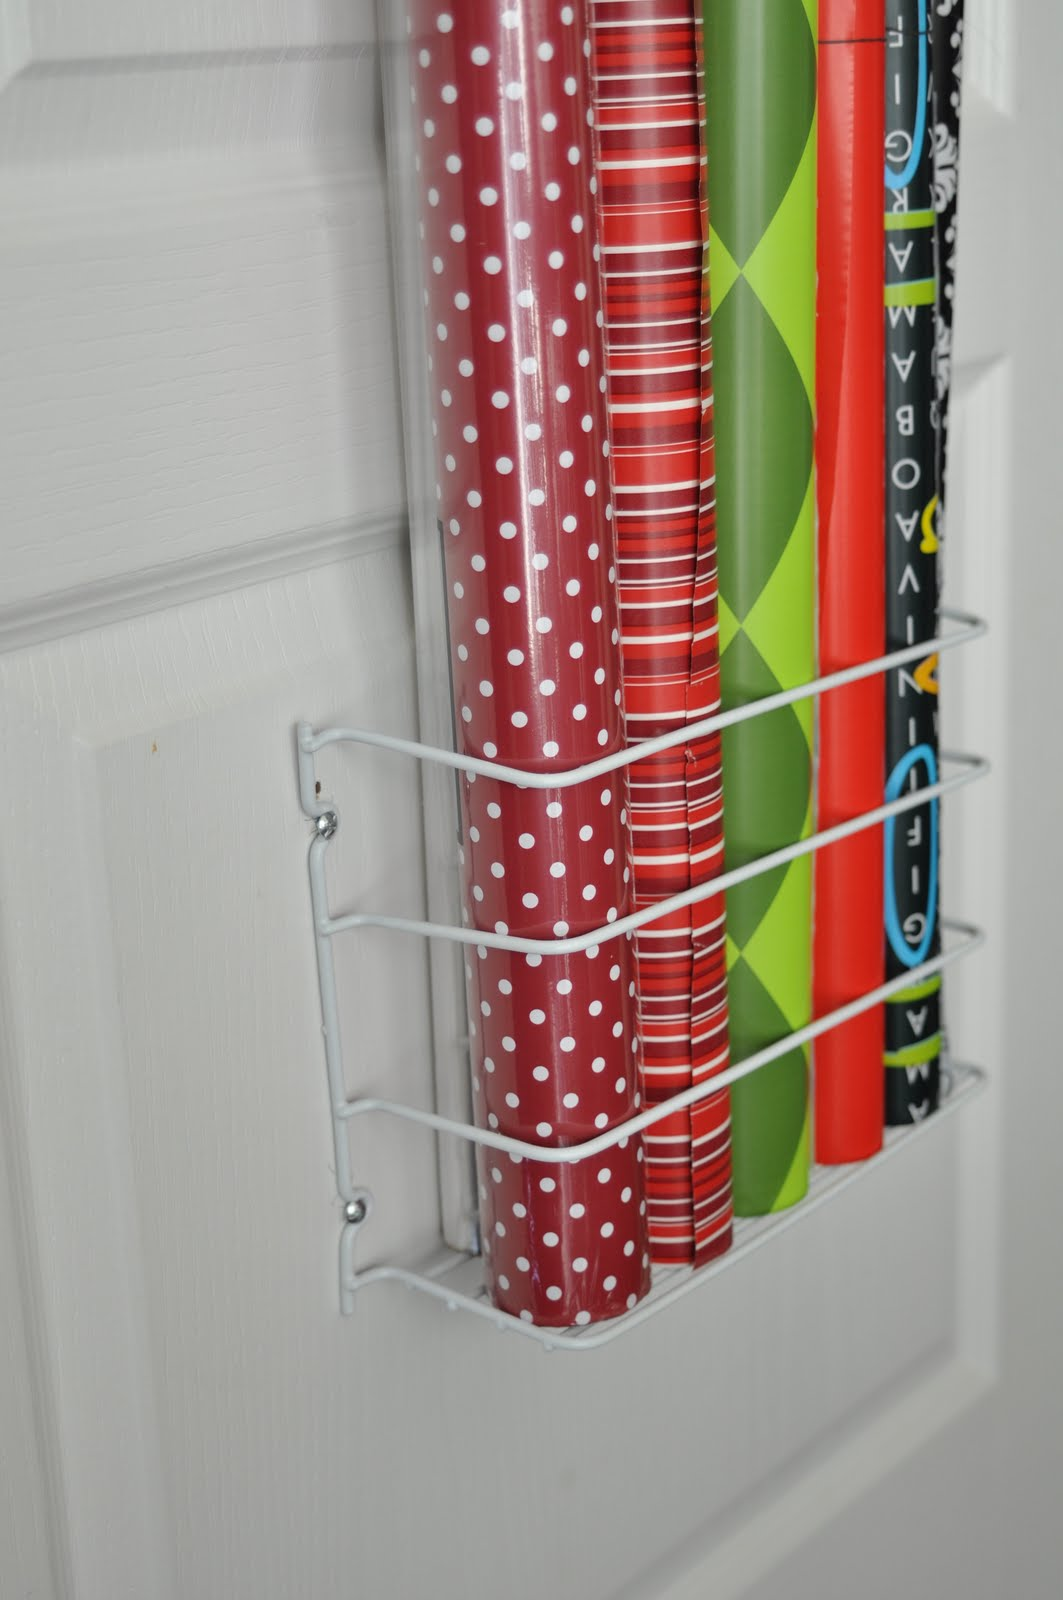 & She\u0027s crafty: Gift Wrap organizer